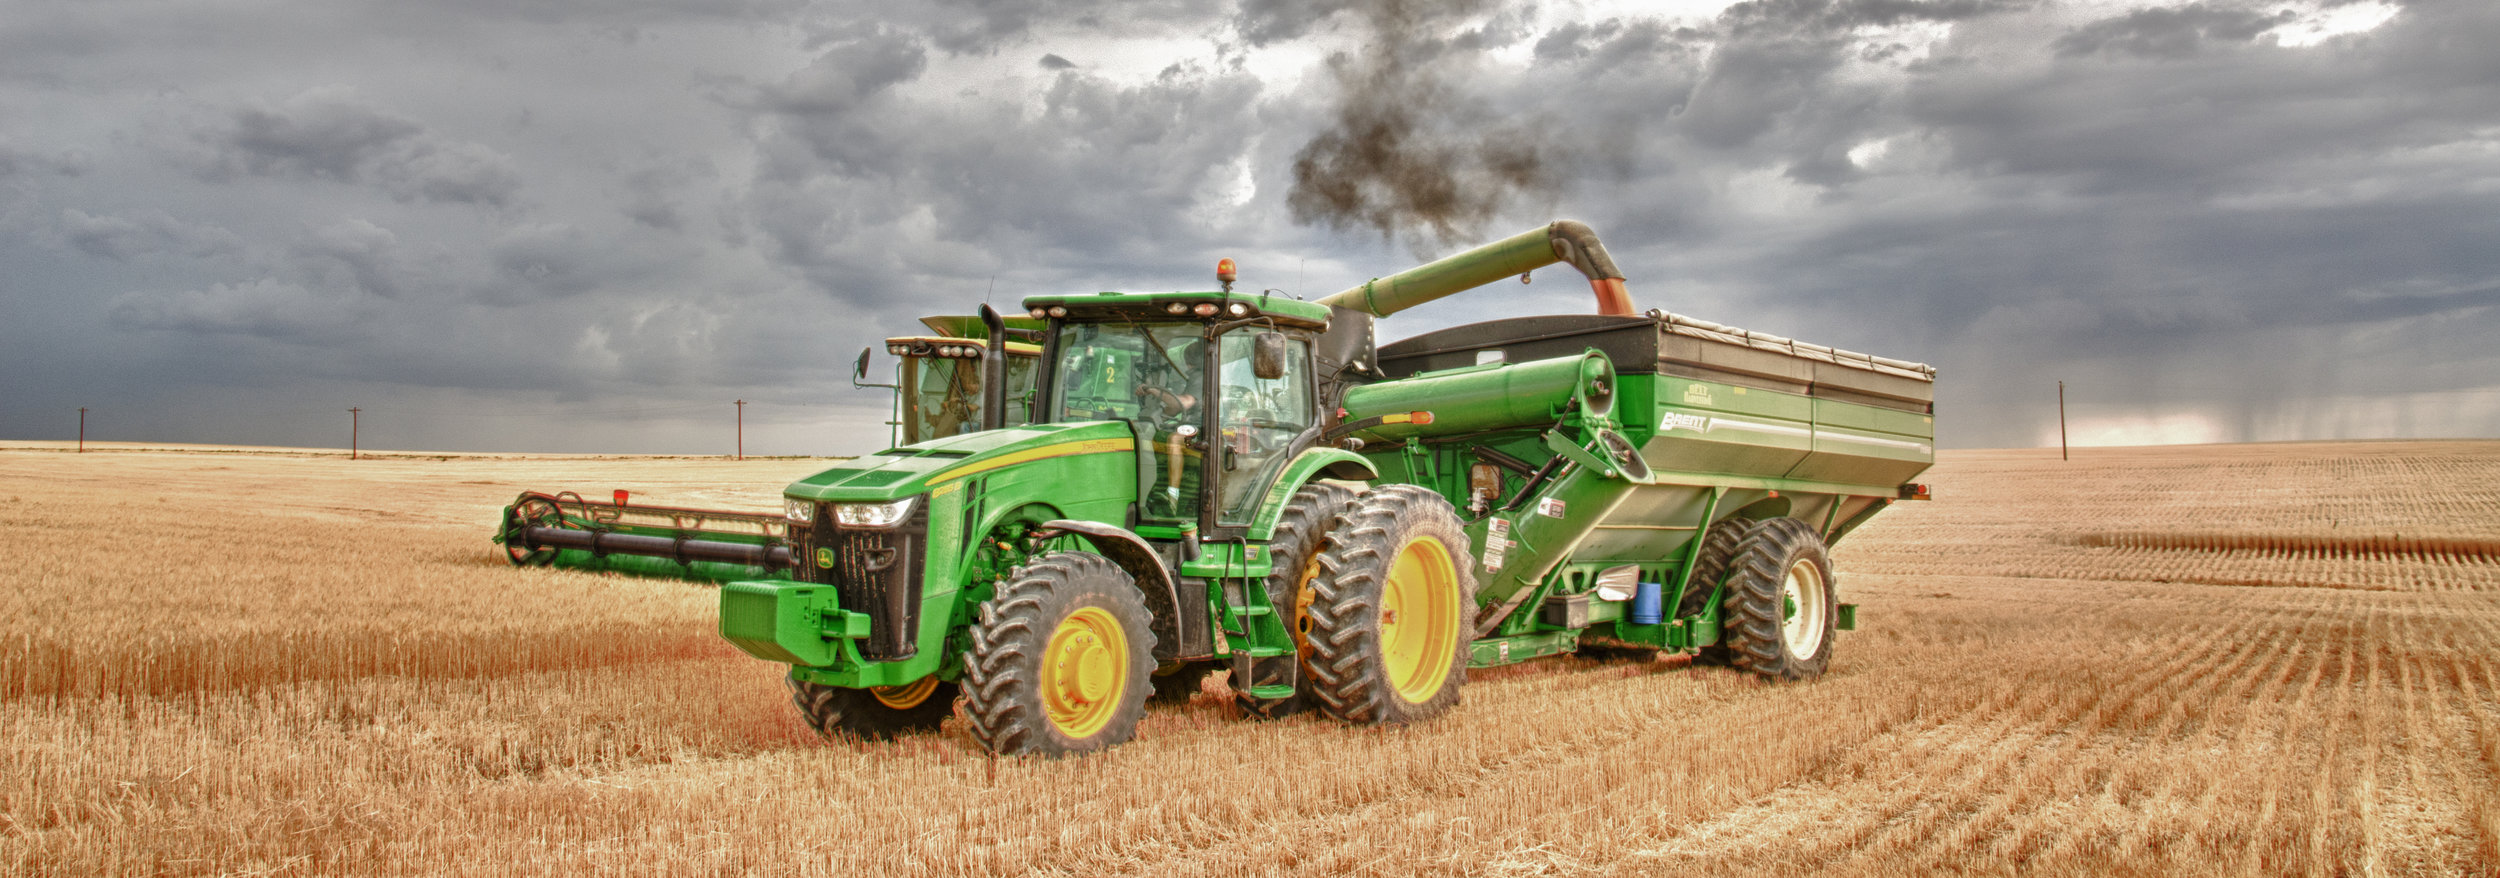 Combine dumping wheat onto grain cart pulled by a tractor. Image is by Shannon Dizmang